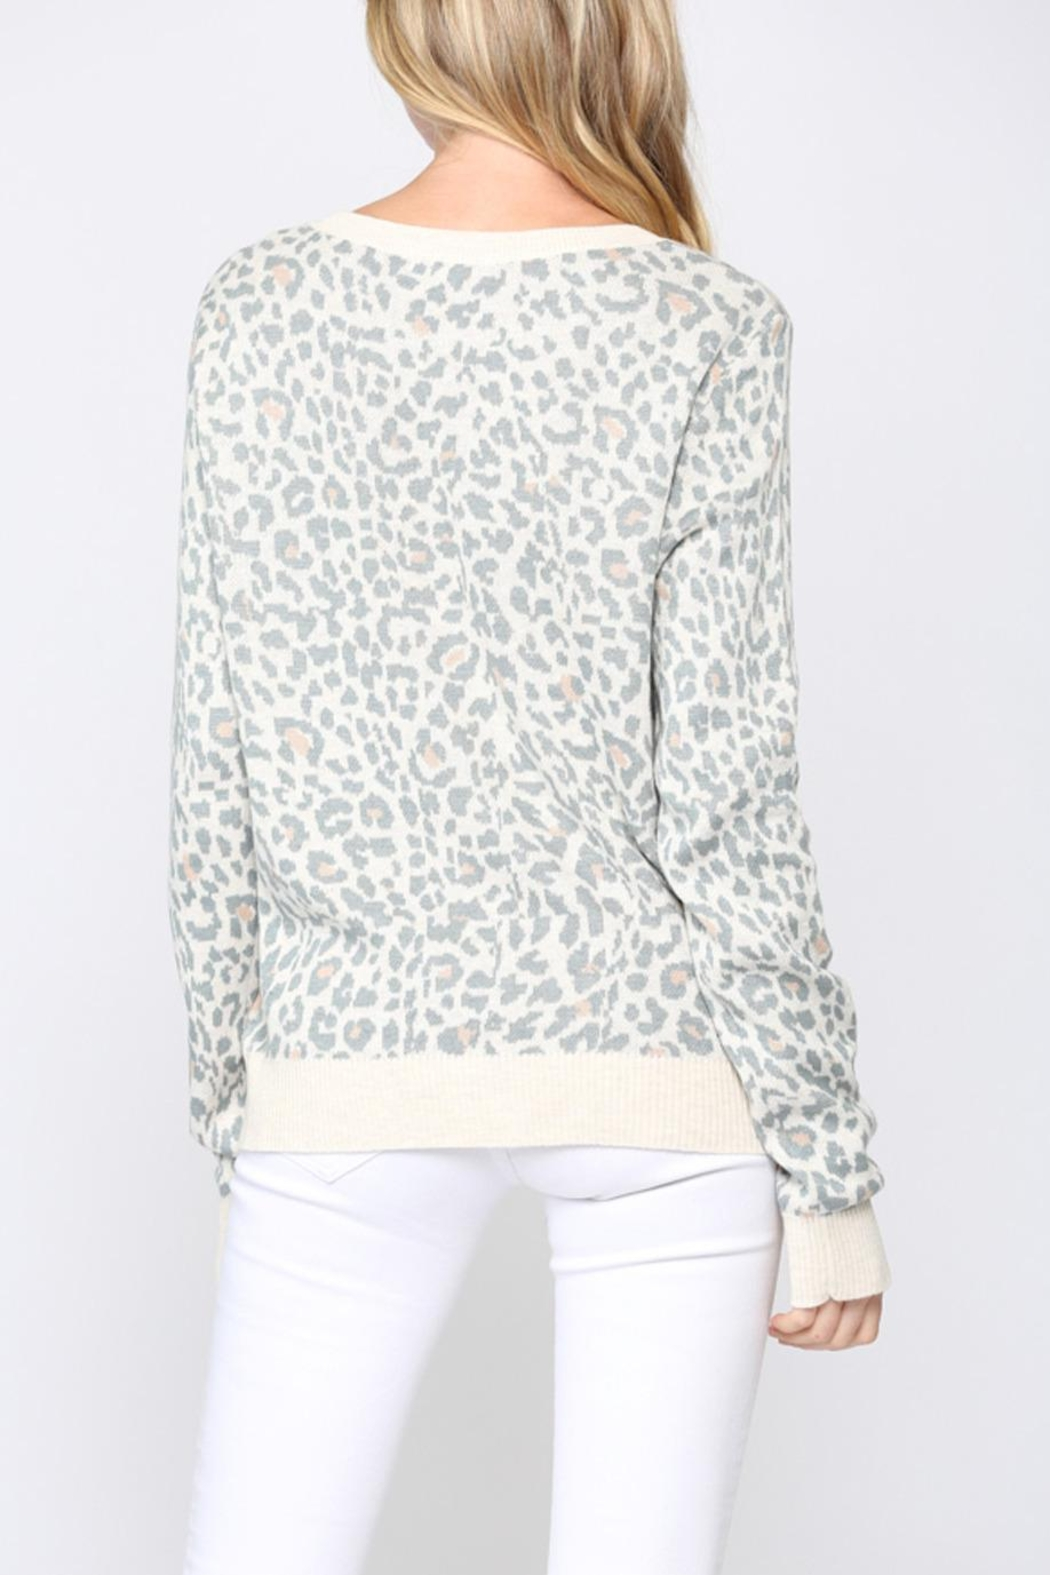 FATE by LFD Leopard Sweater +Mask - Back Cropped Image